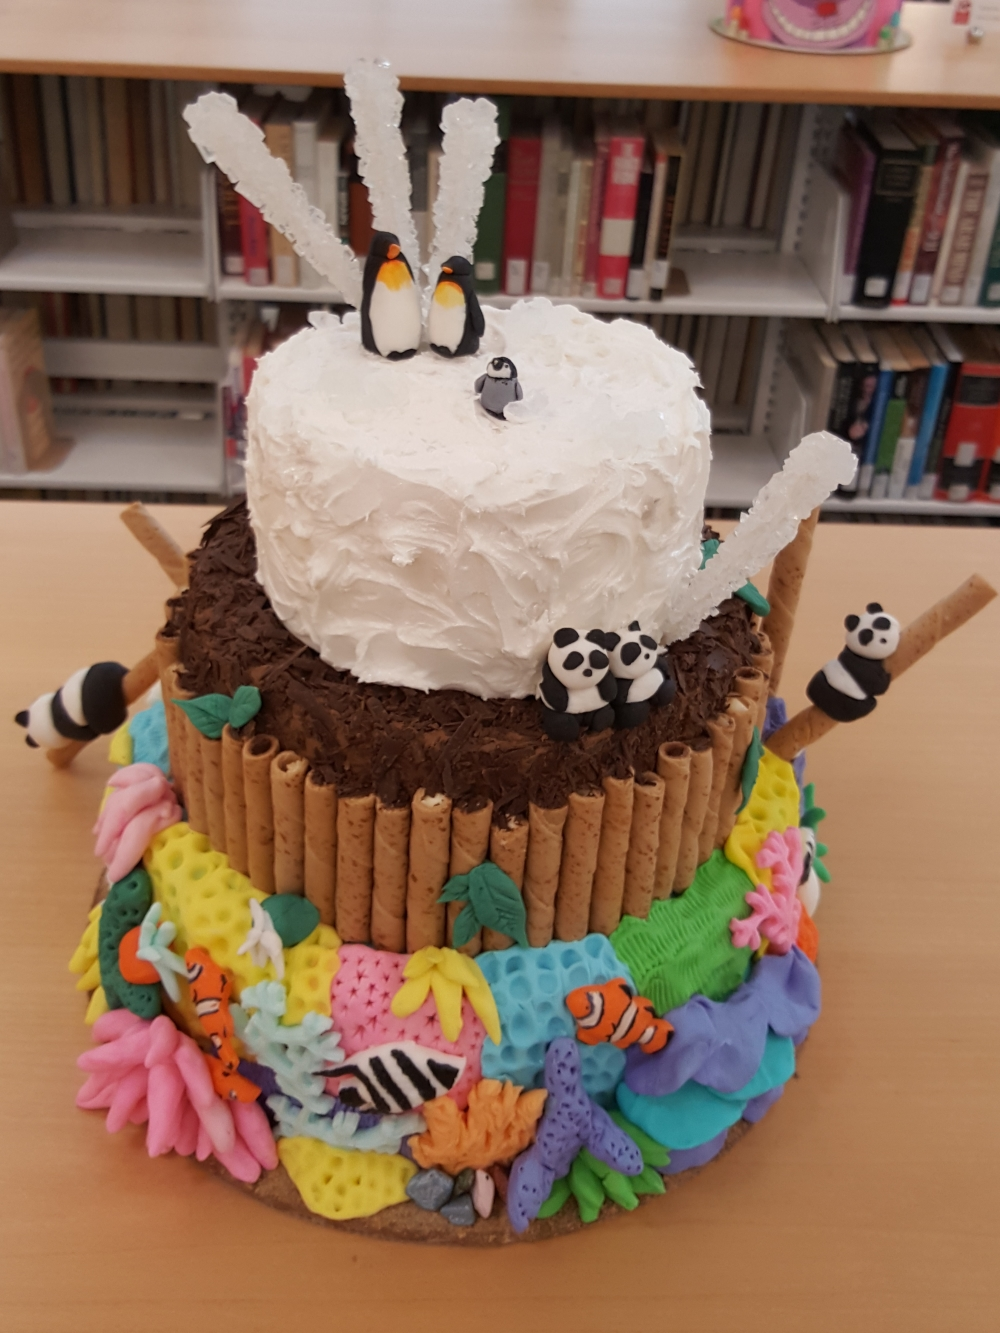 2019 Cakes Endangered Species - top view